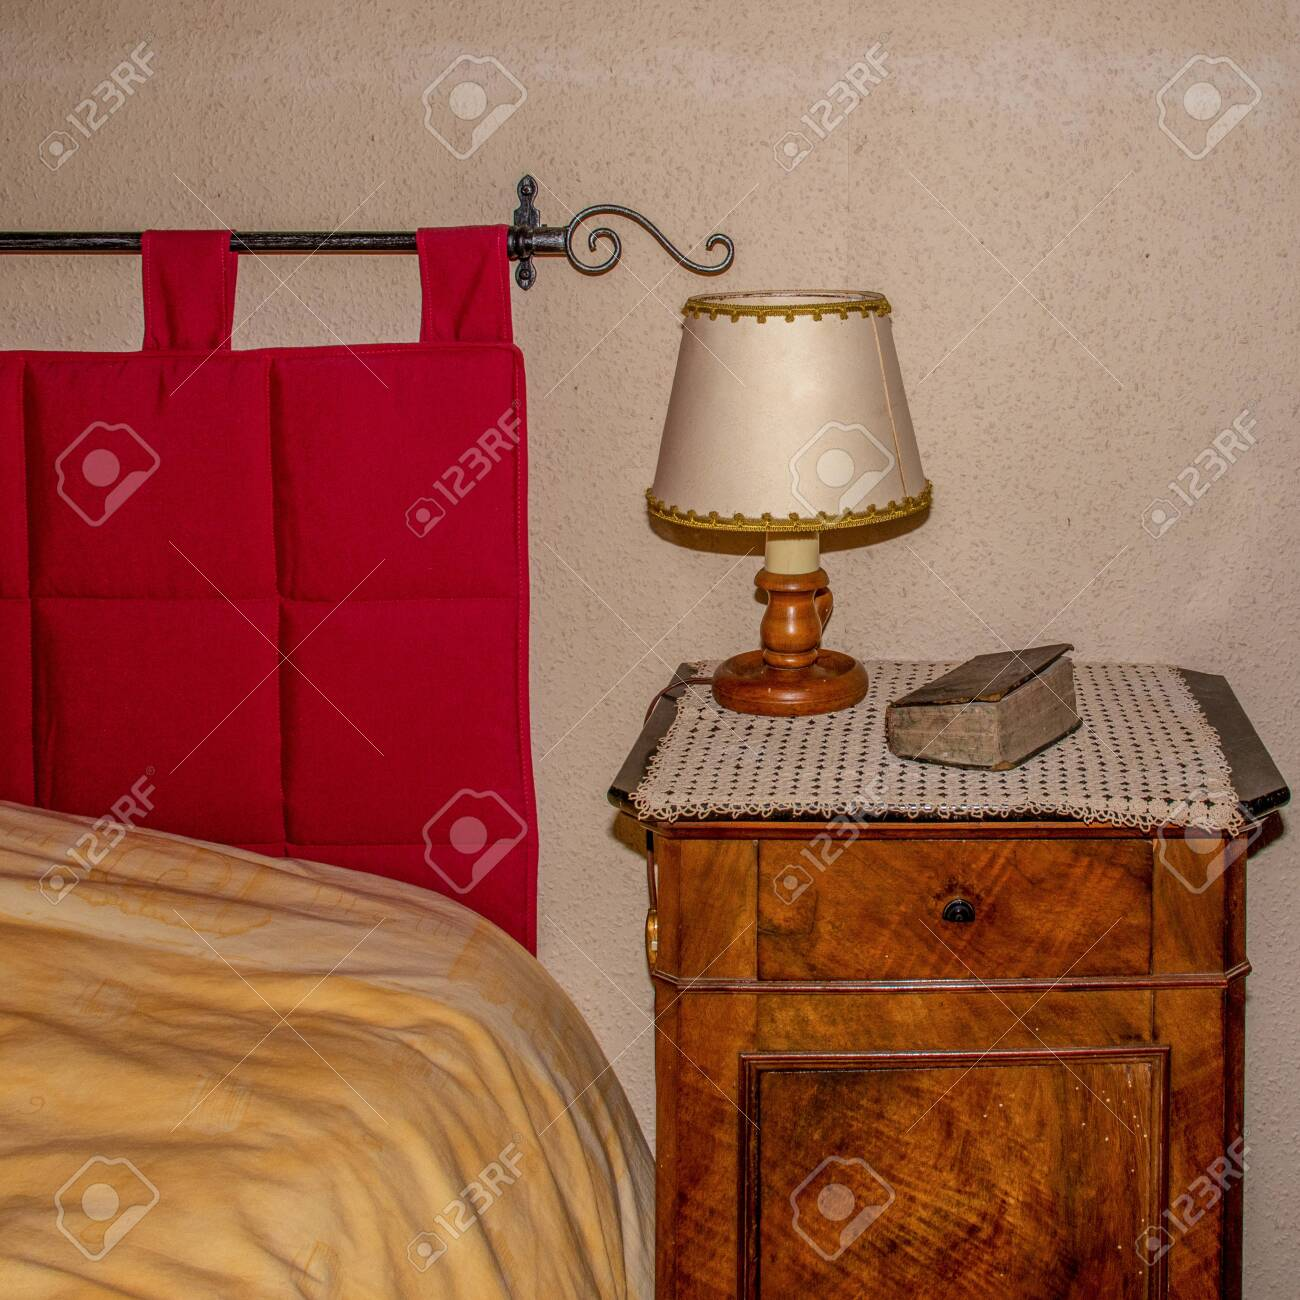 Victorian Decorated Bed And Side Table With Lamp And Bible